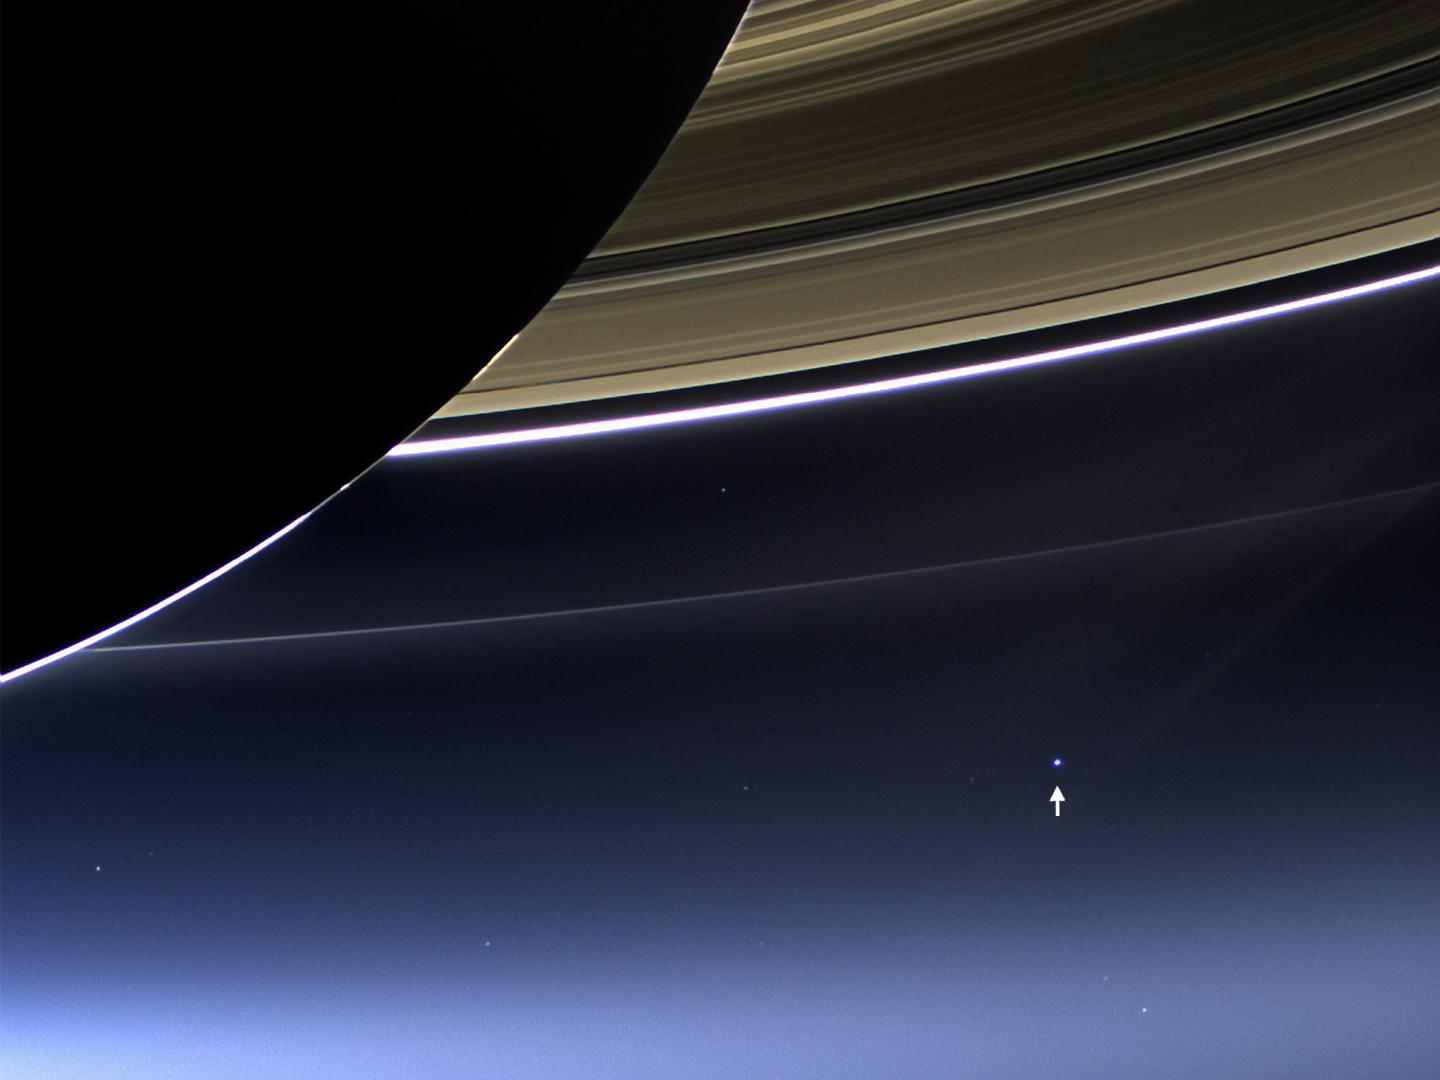 Saturn's rings, Earth and the moon